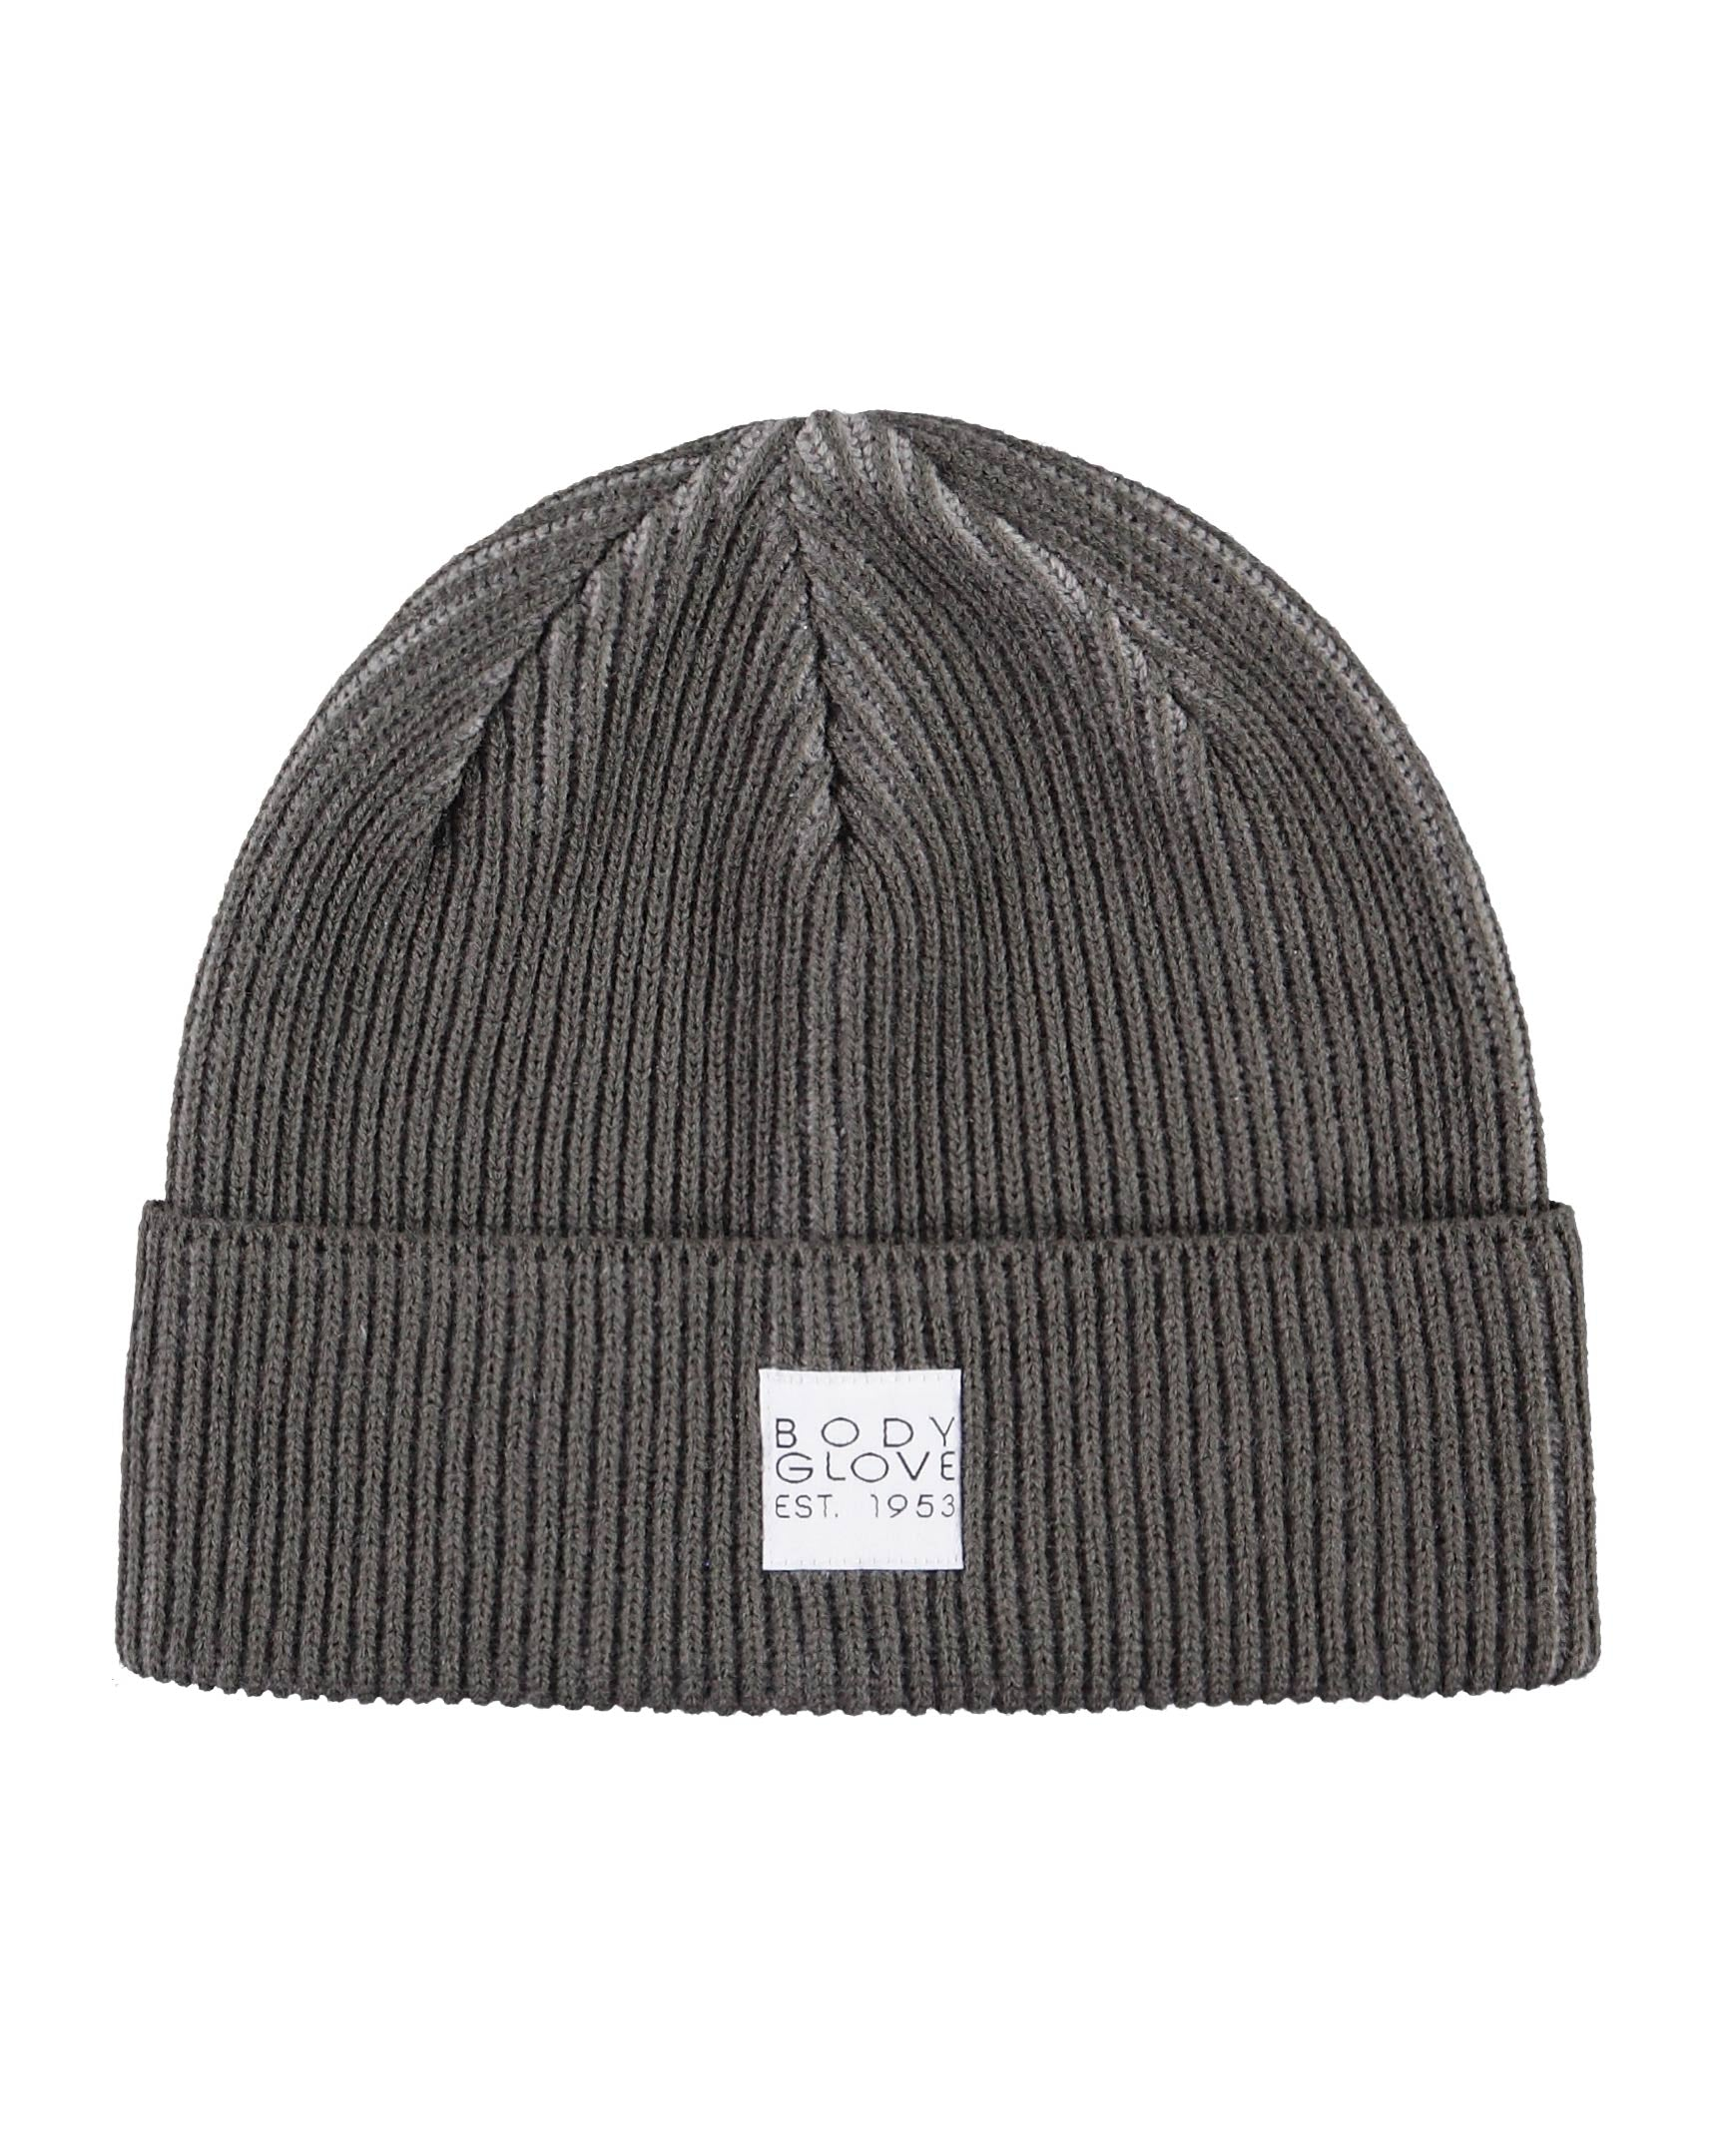 Unisex Two-Tone Ribbed Beanie with Woven Label - Grey